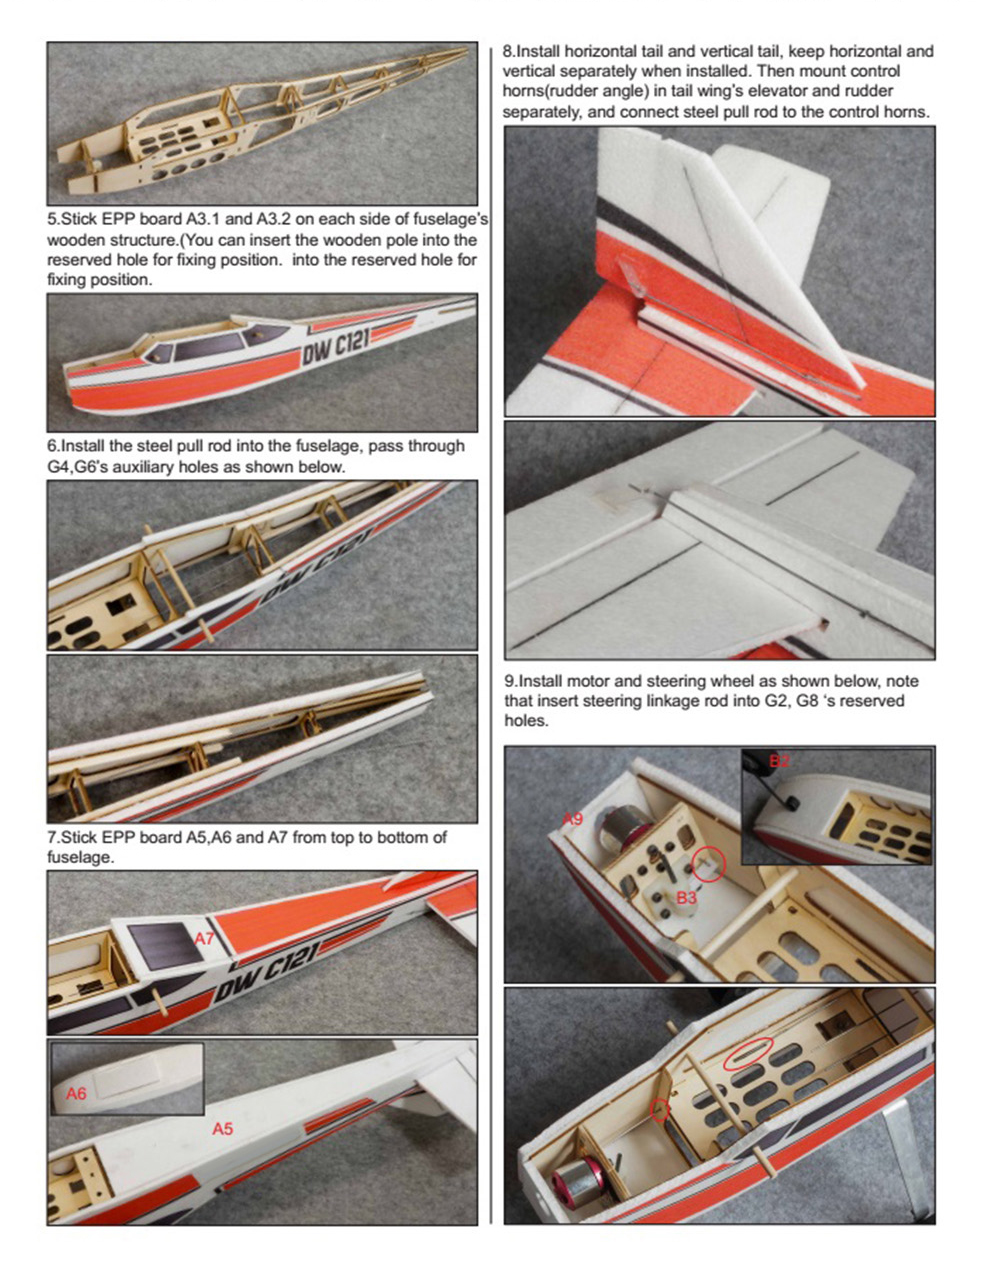 EPP 960mm Wingspan Training RC Airplane for Beginners - $49.99 Free ...